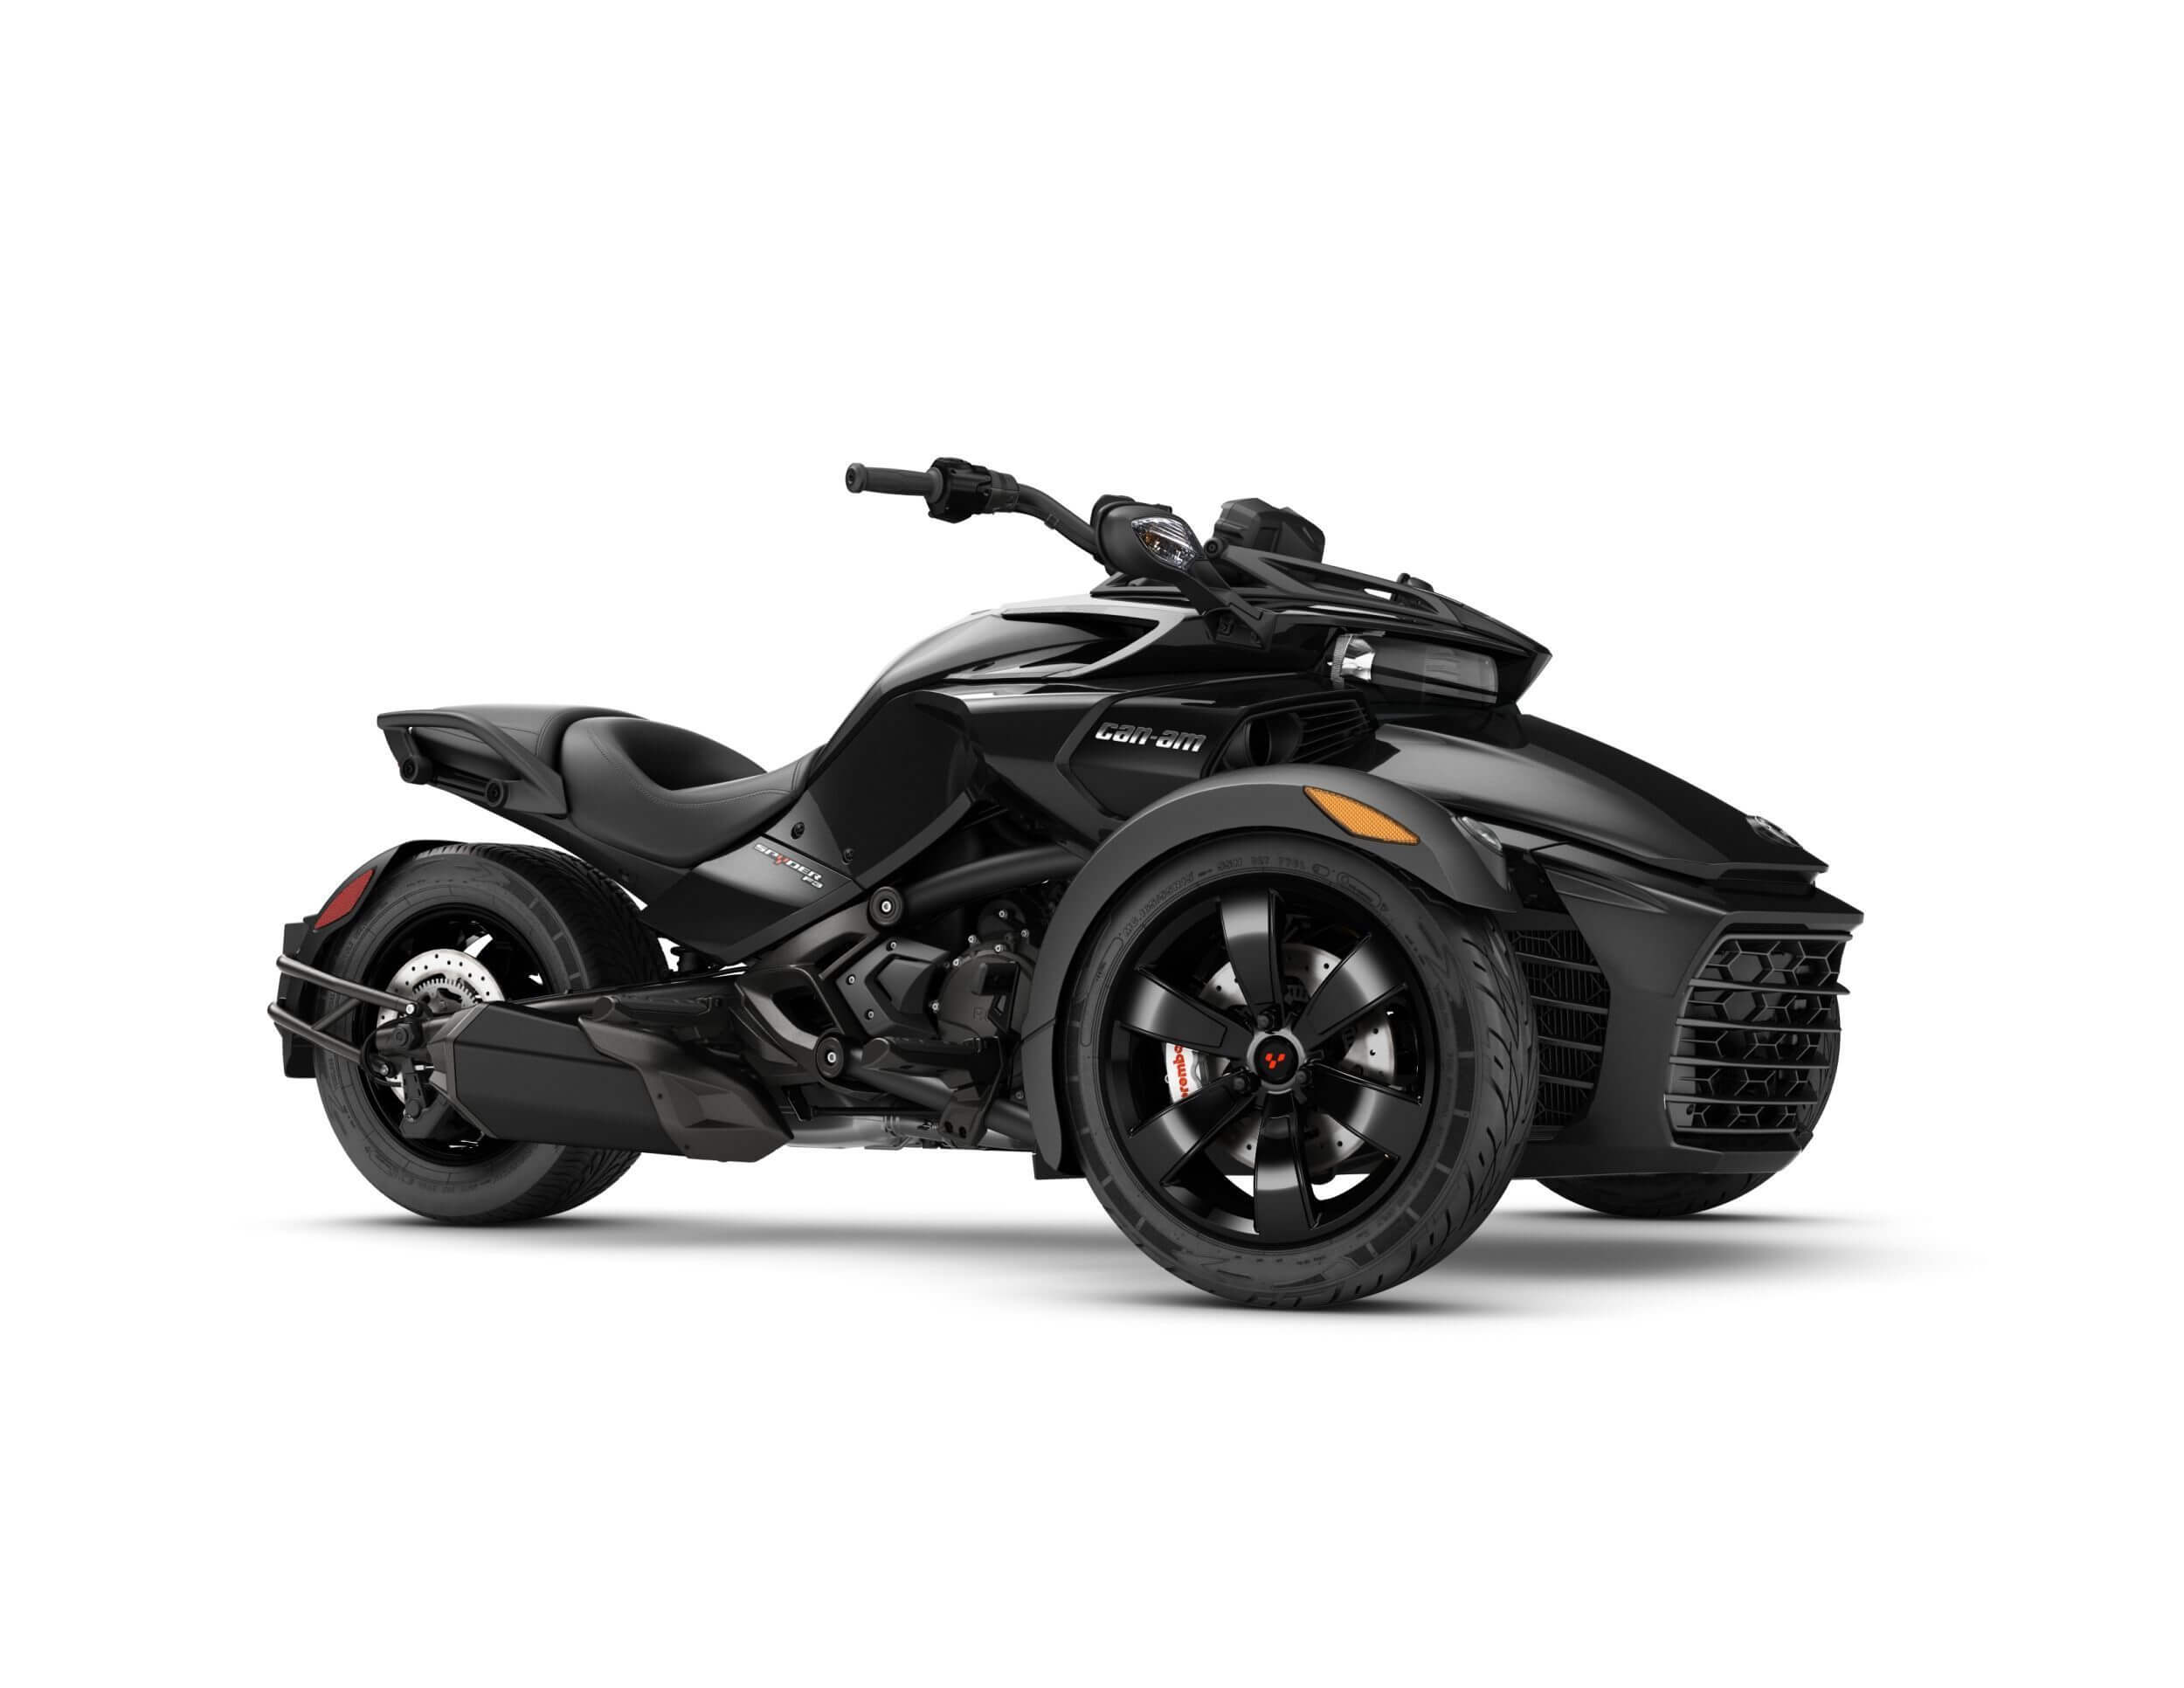 gebrauchte can am spyder f3 motorr der kaufen. Black Bedroom Furniture Sets. Home Design Ideas